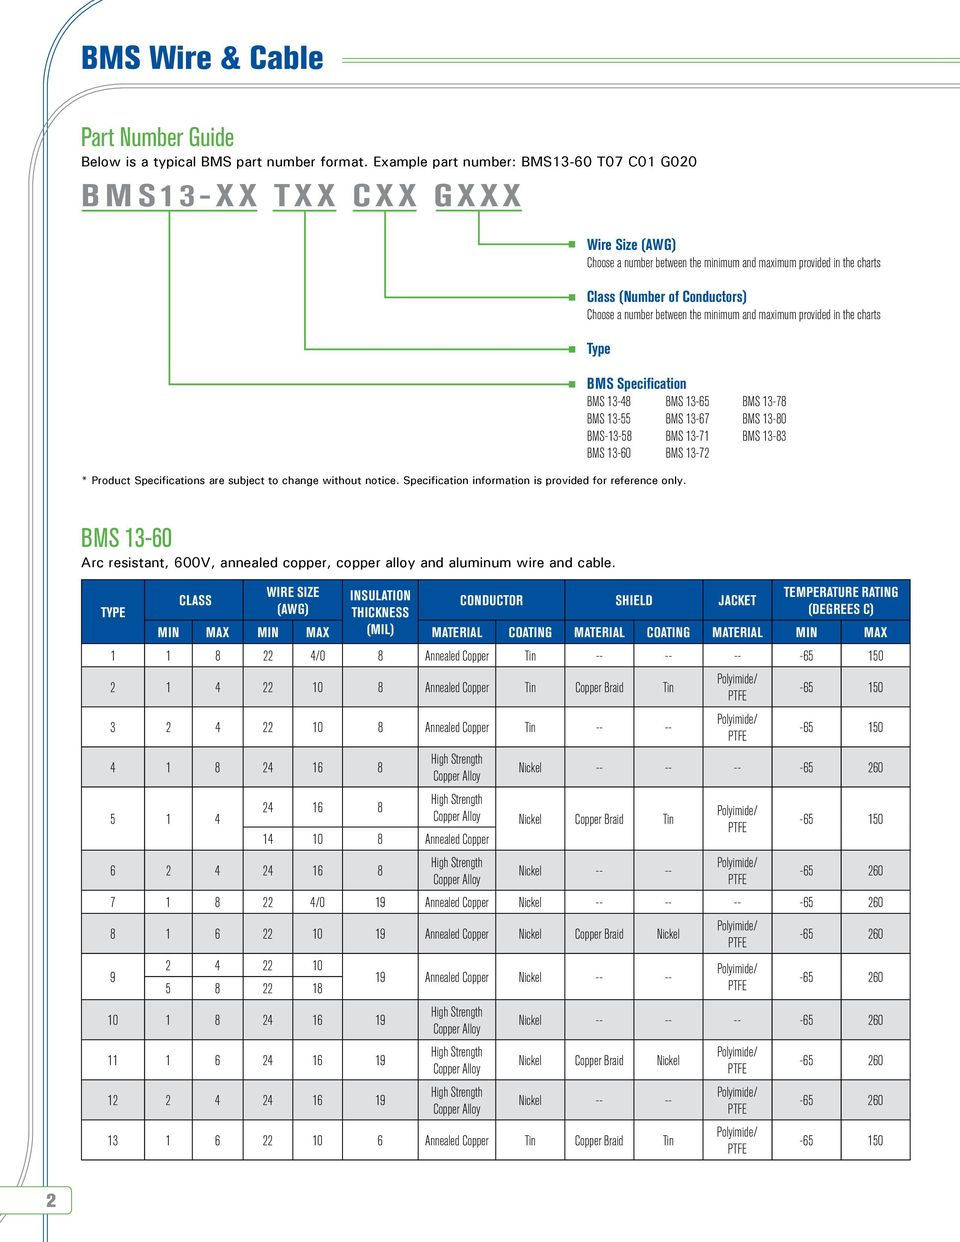 AFTERMARKET SERVICES WIRE & CABLE GUIDE - PDF